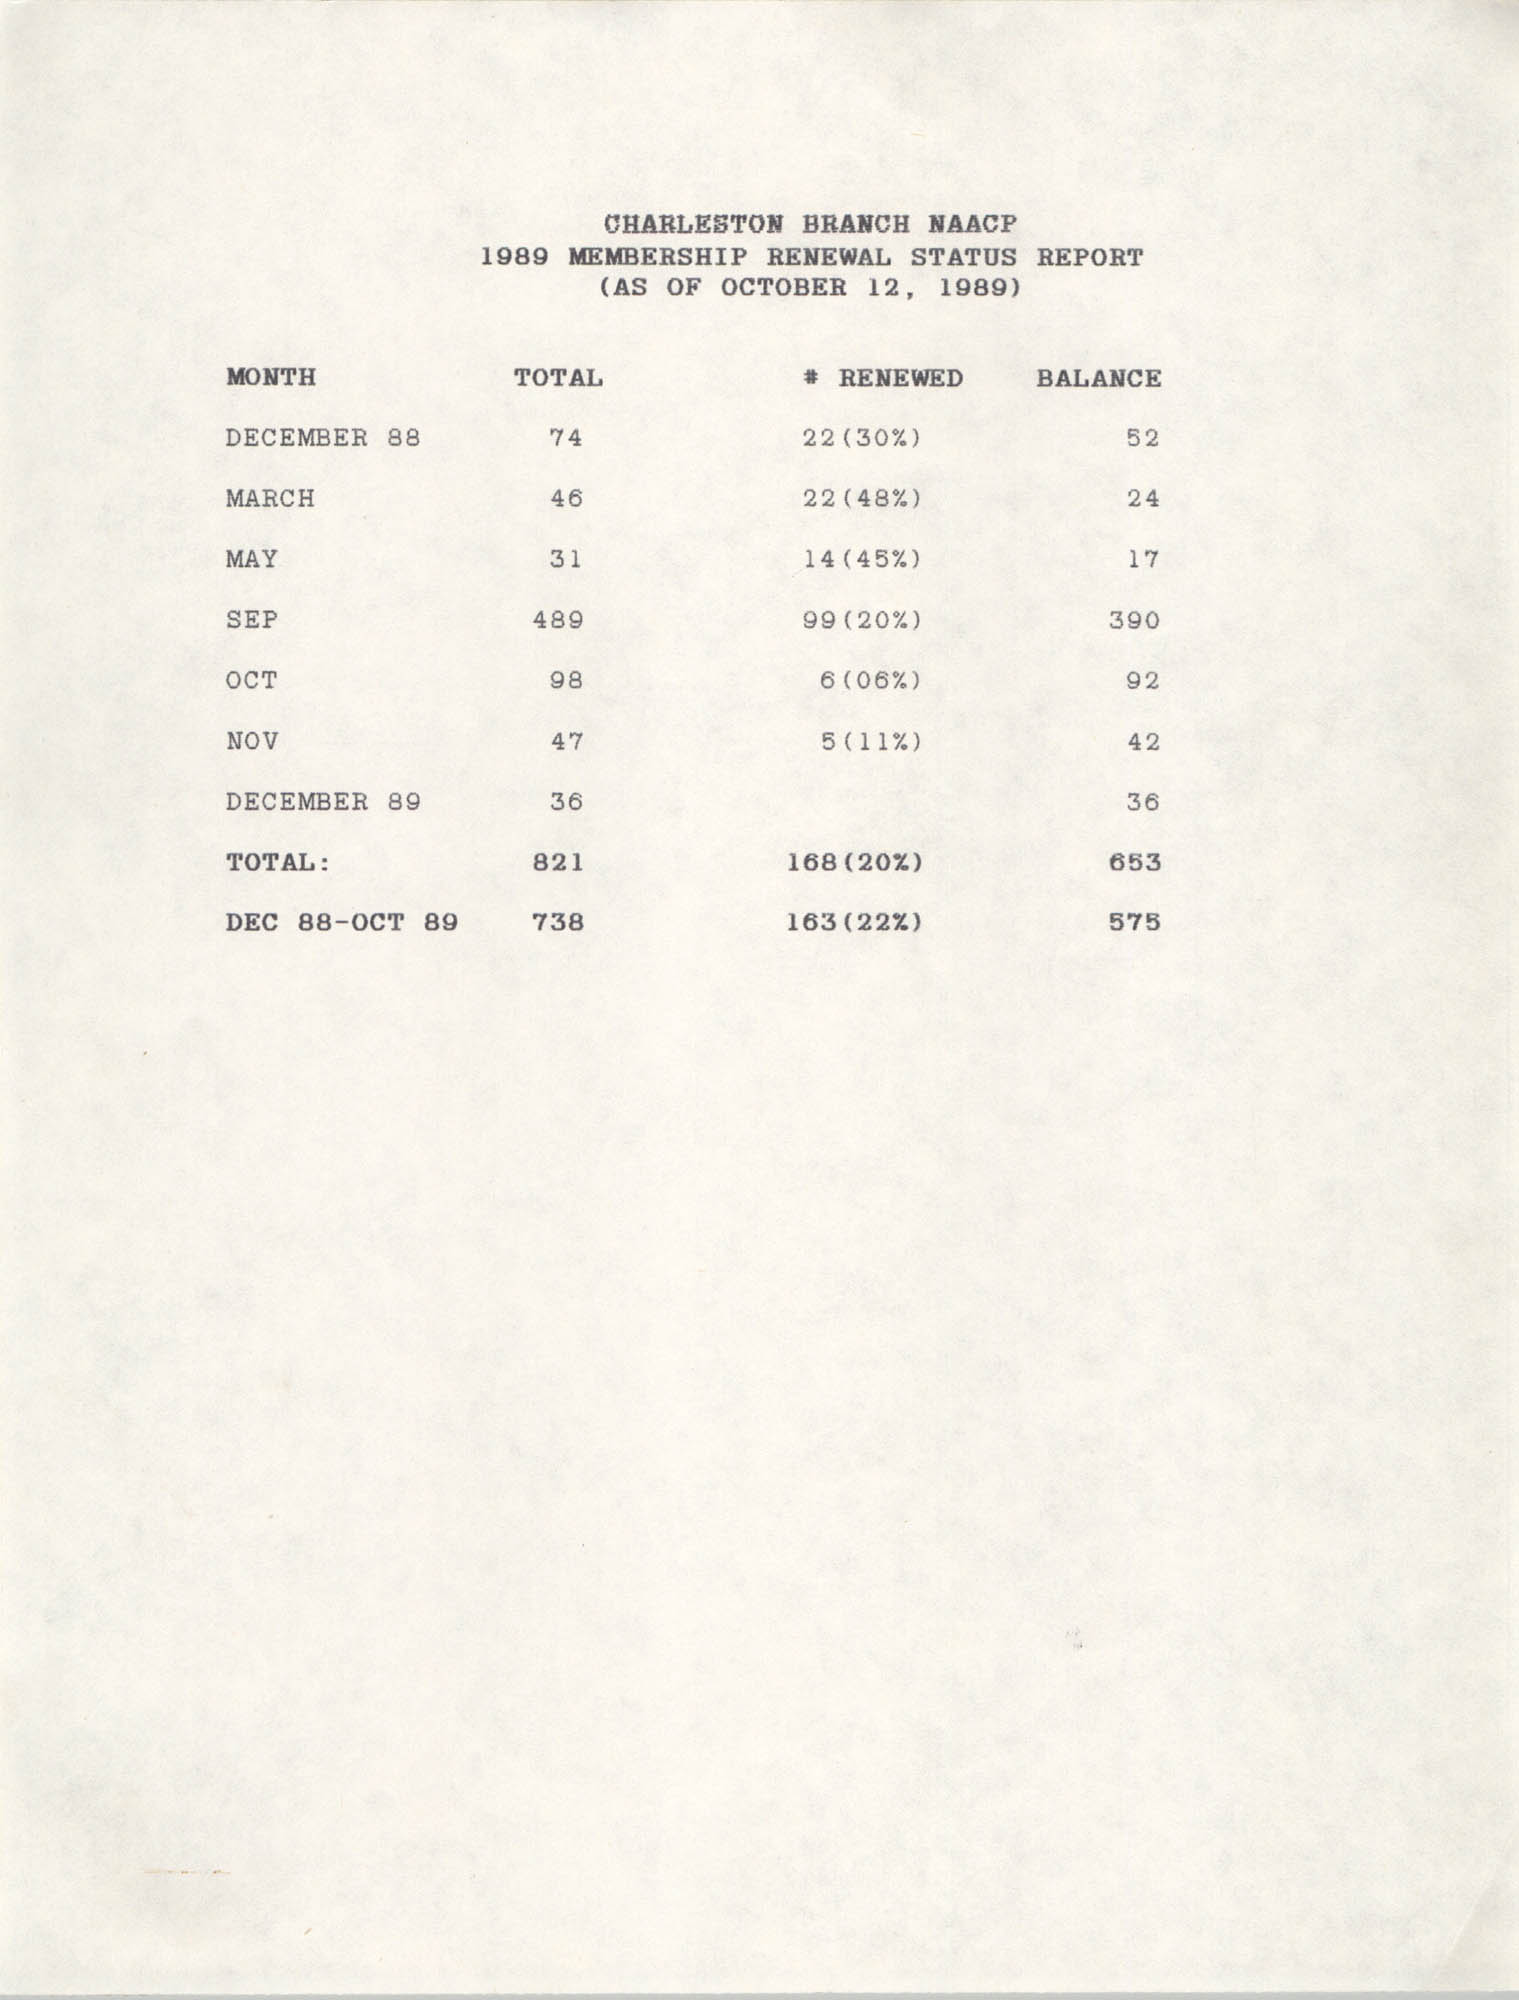 Membership Renewal Status Report, National Association for the Advancement of Colored People, October 12, 1989